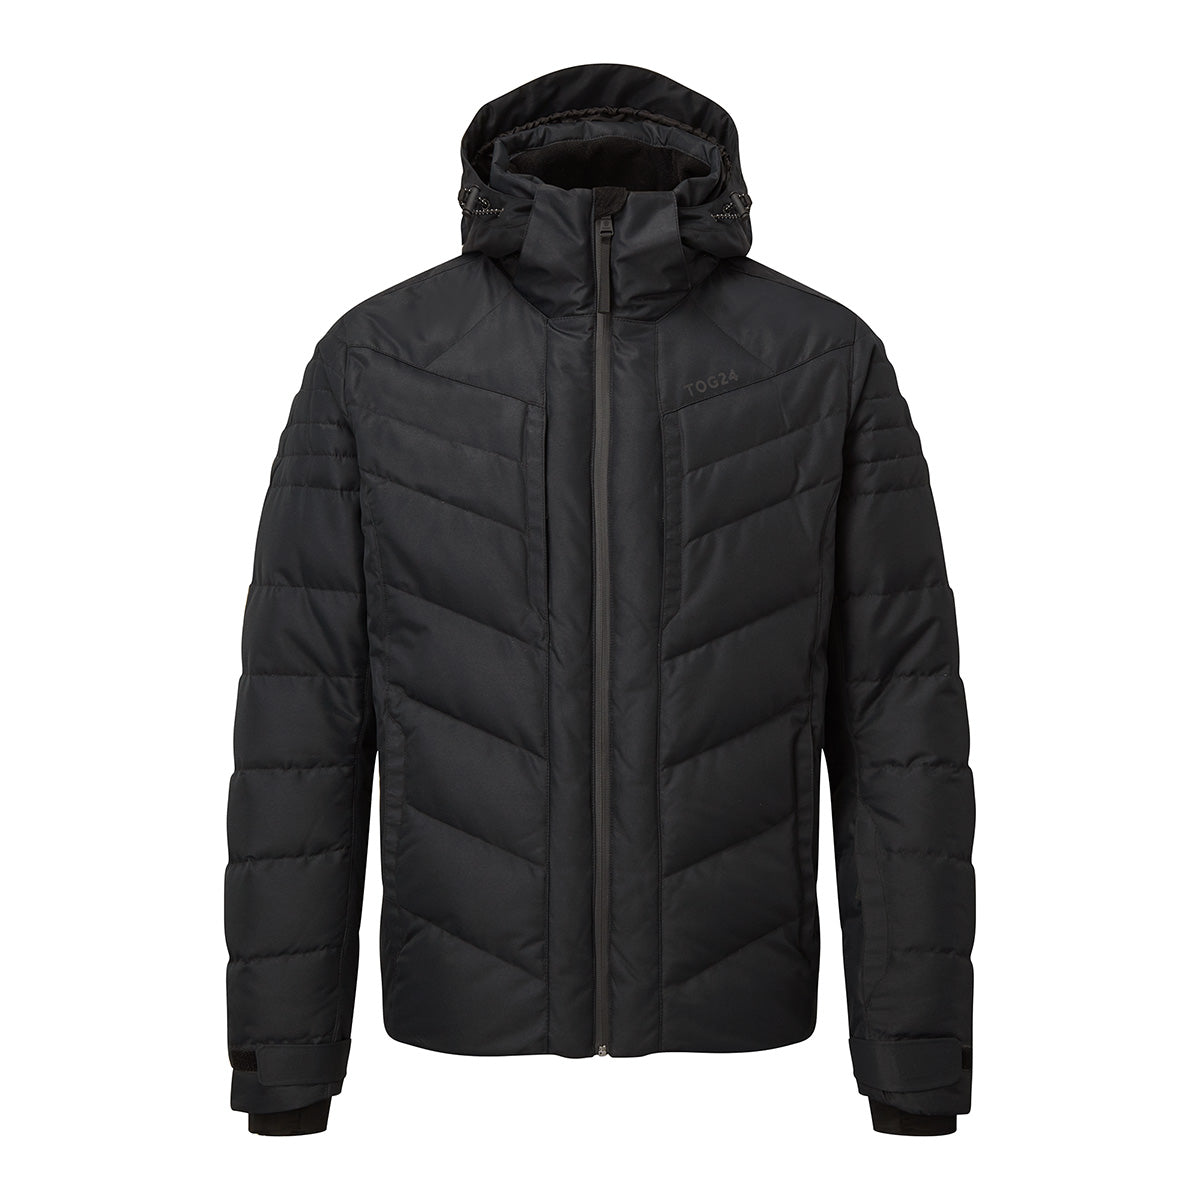 Scar Mens Down Insulated Ski Jacket - Black